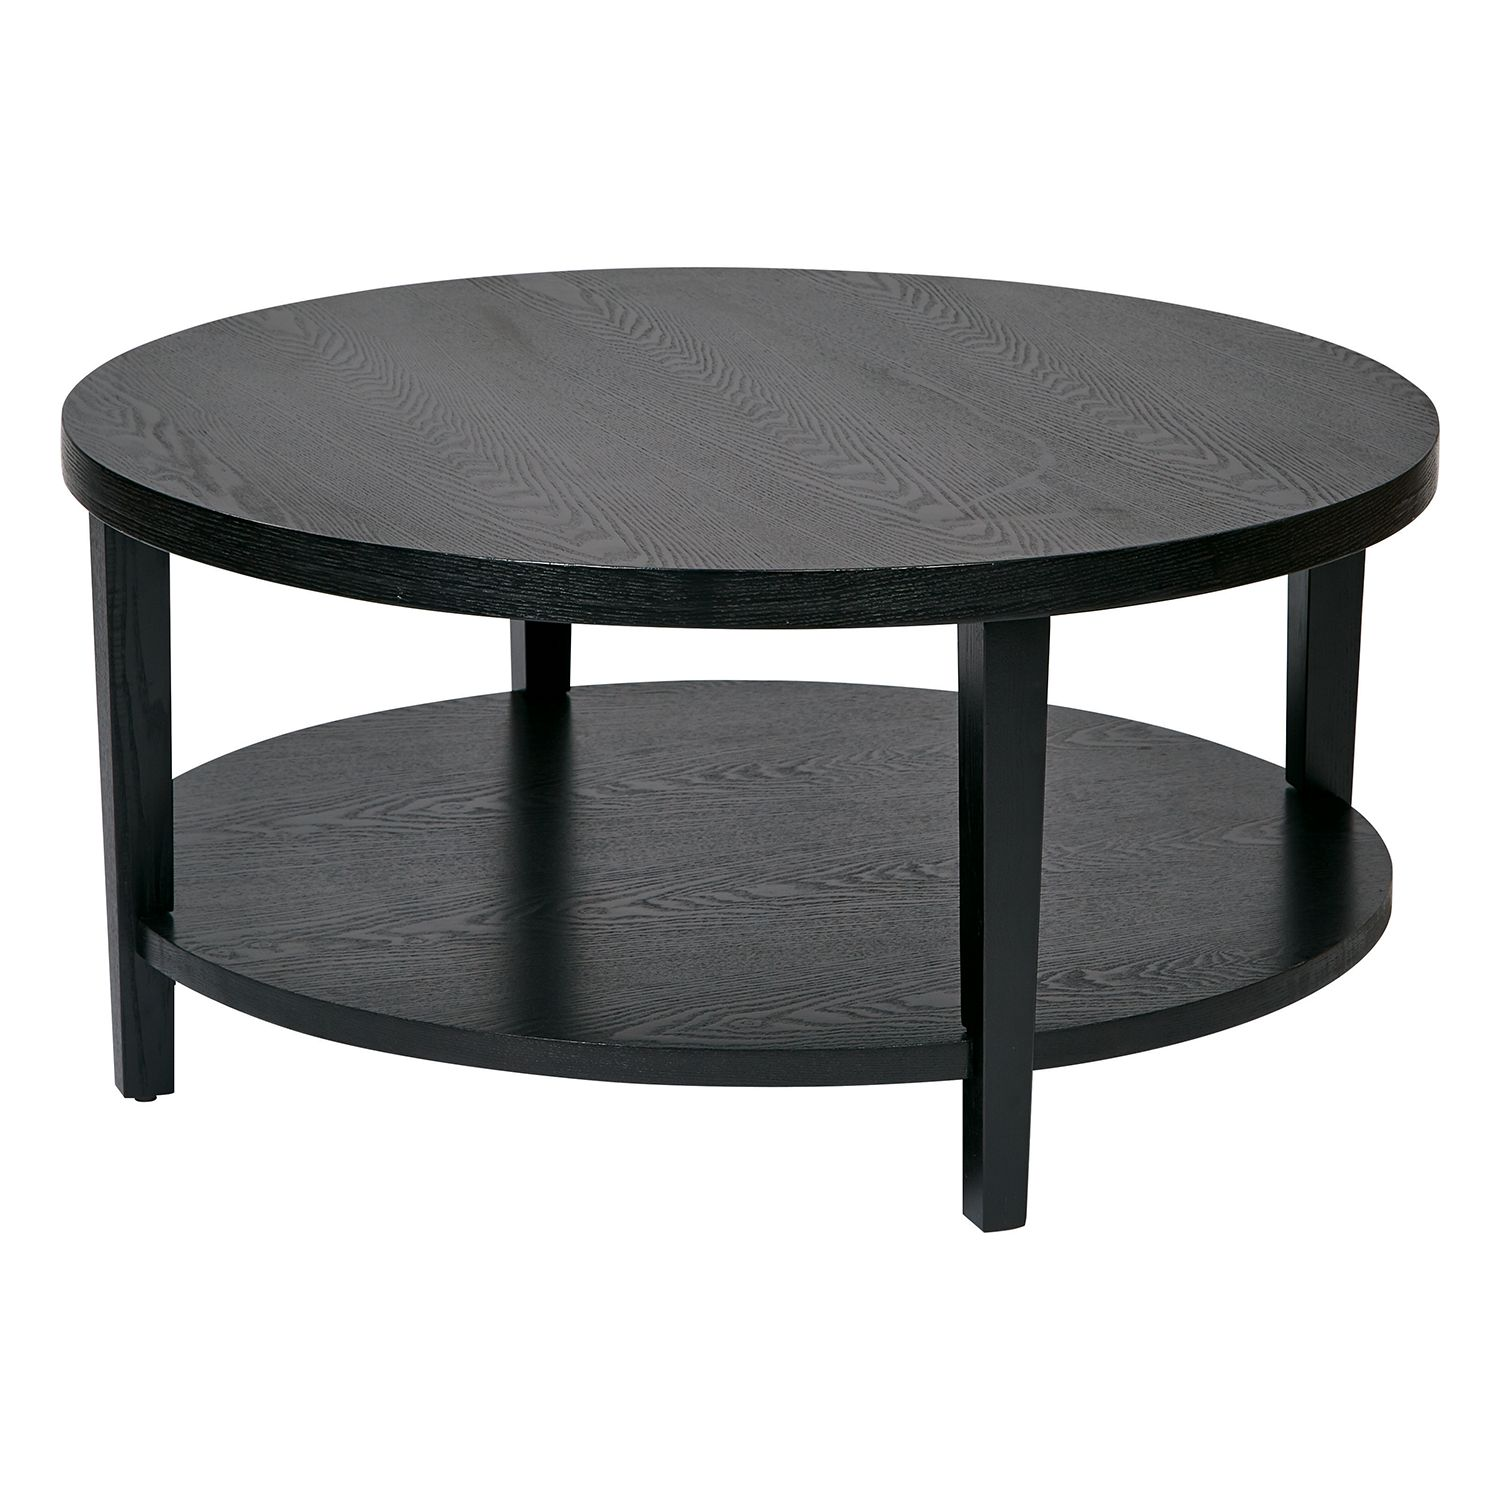 Sonoma goods for life canton console table womenu0027s sonoma ave six merge round end table geotapseo Choice Image